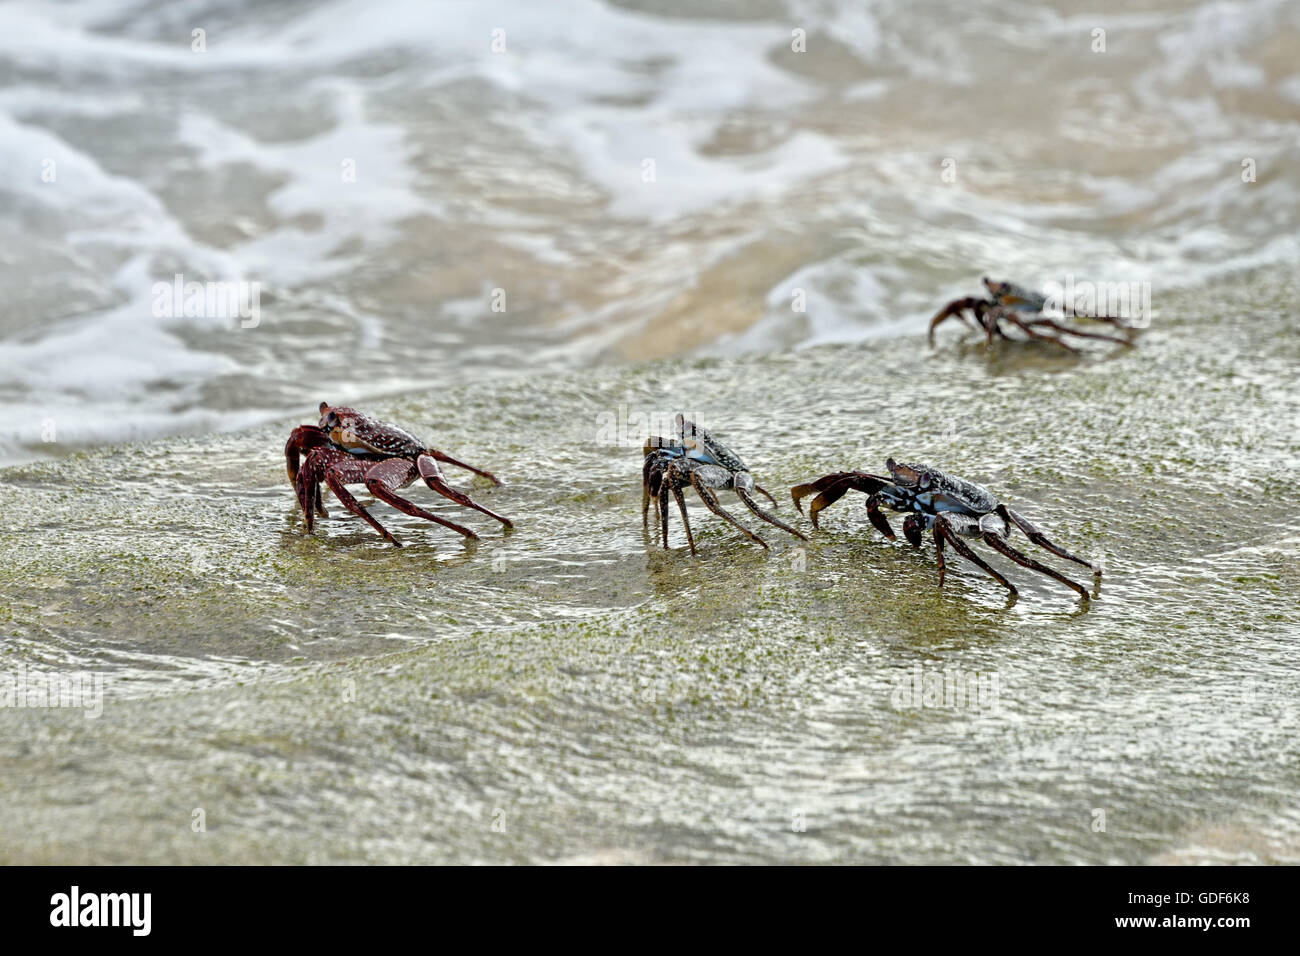 A group of Ascension Island Crabs (Grapsus adscensionis) on a rock on a beach on Ascension Island Stock Photo